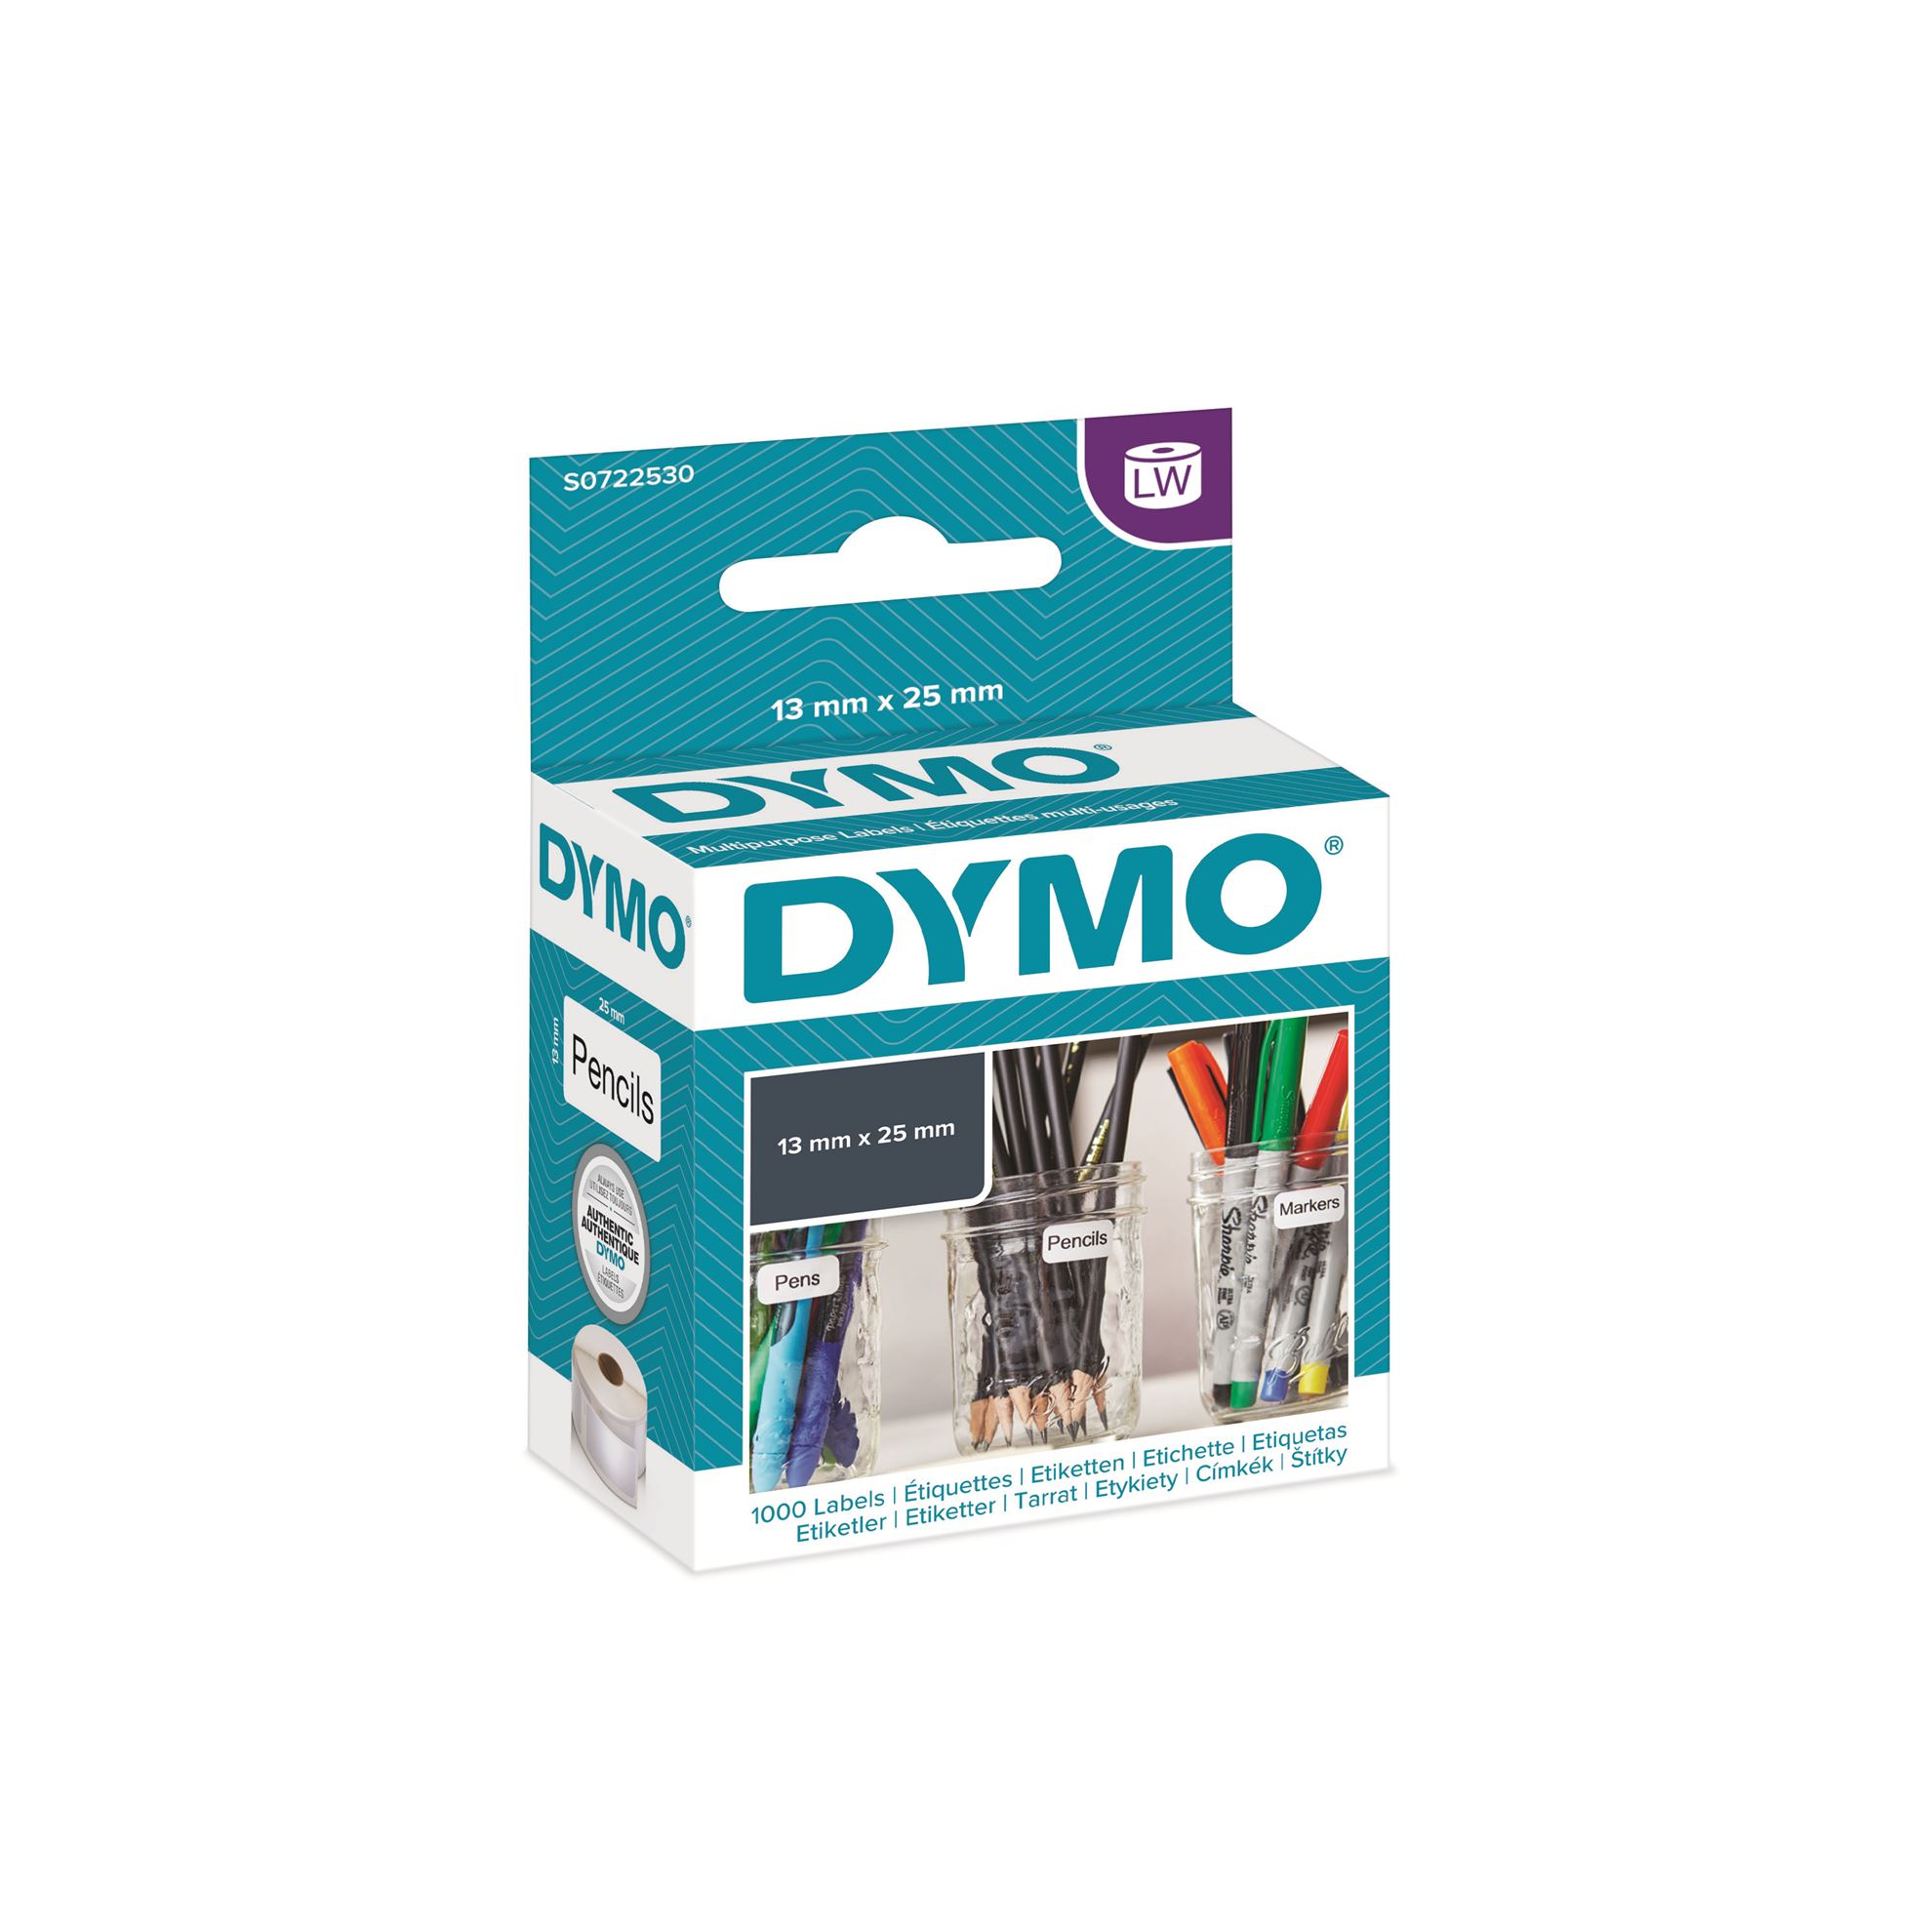 DYMO LW 13mm x 25mm Black on White 2 Up Multi-Purpose Label Roll